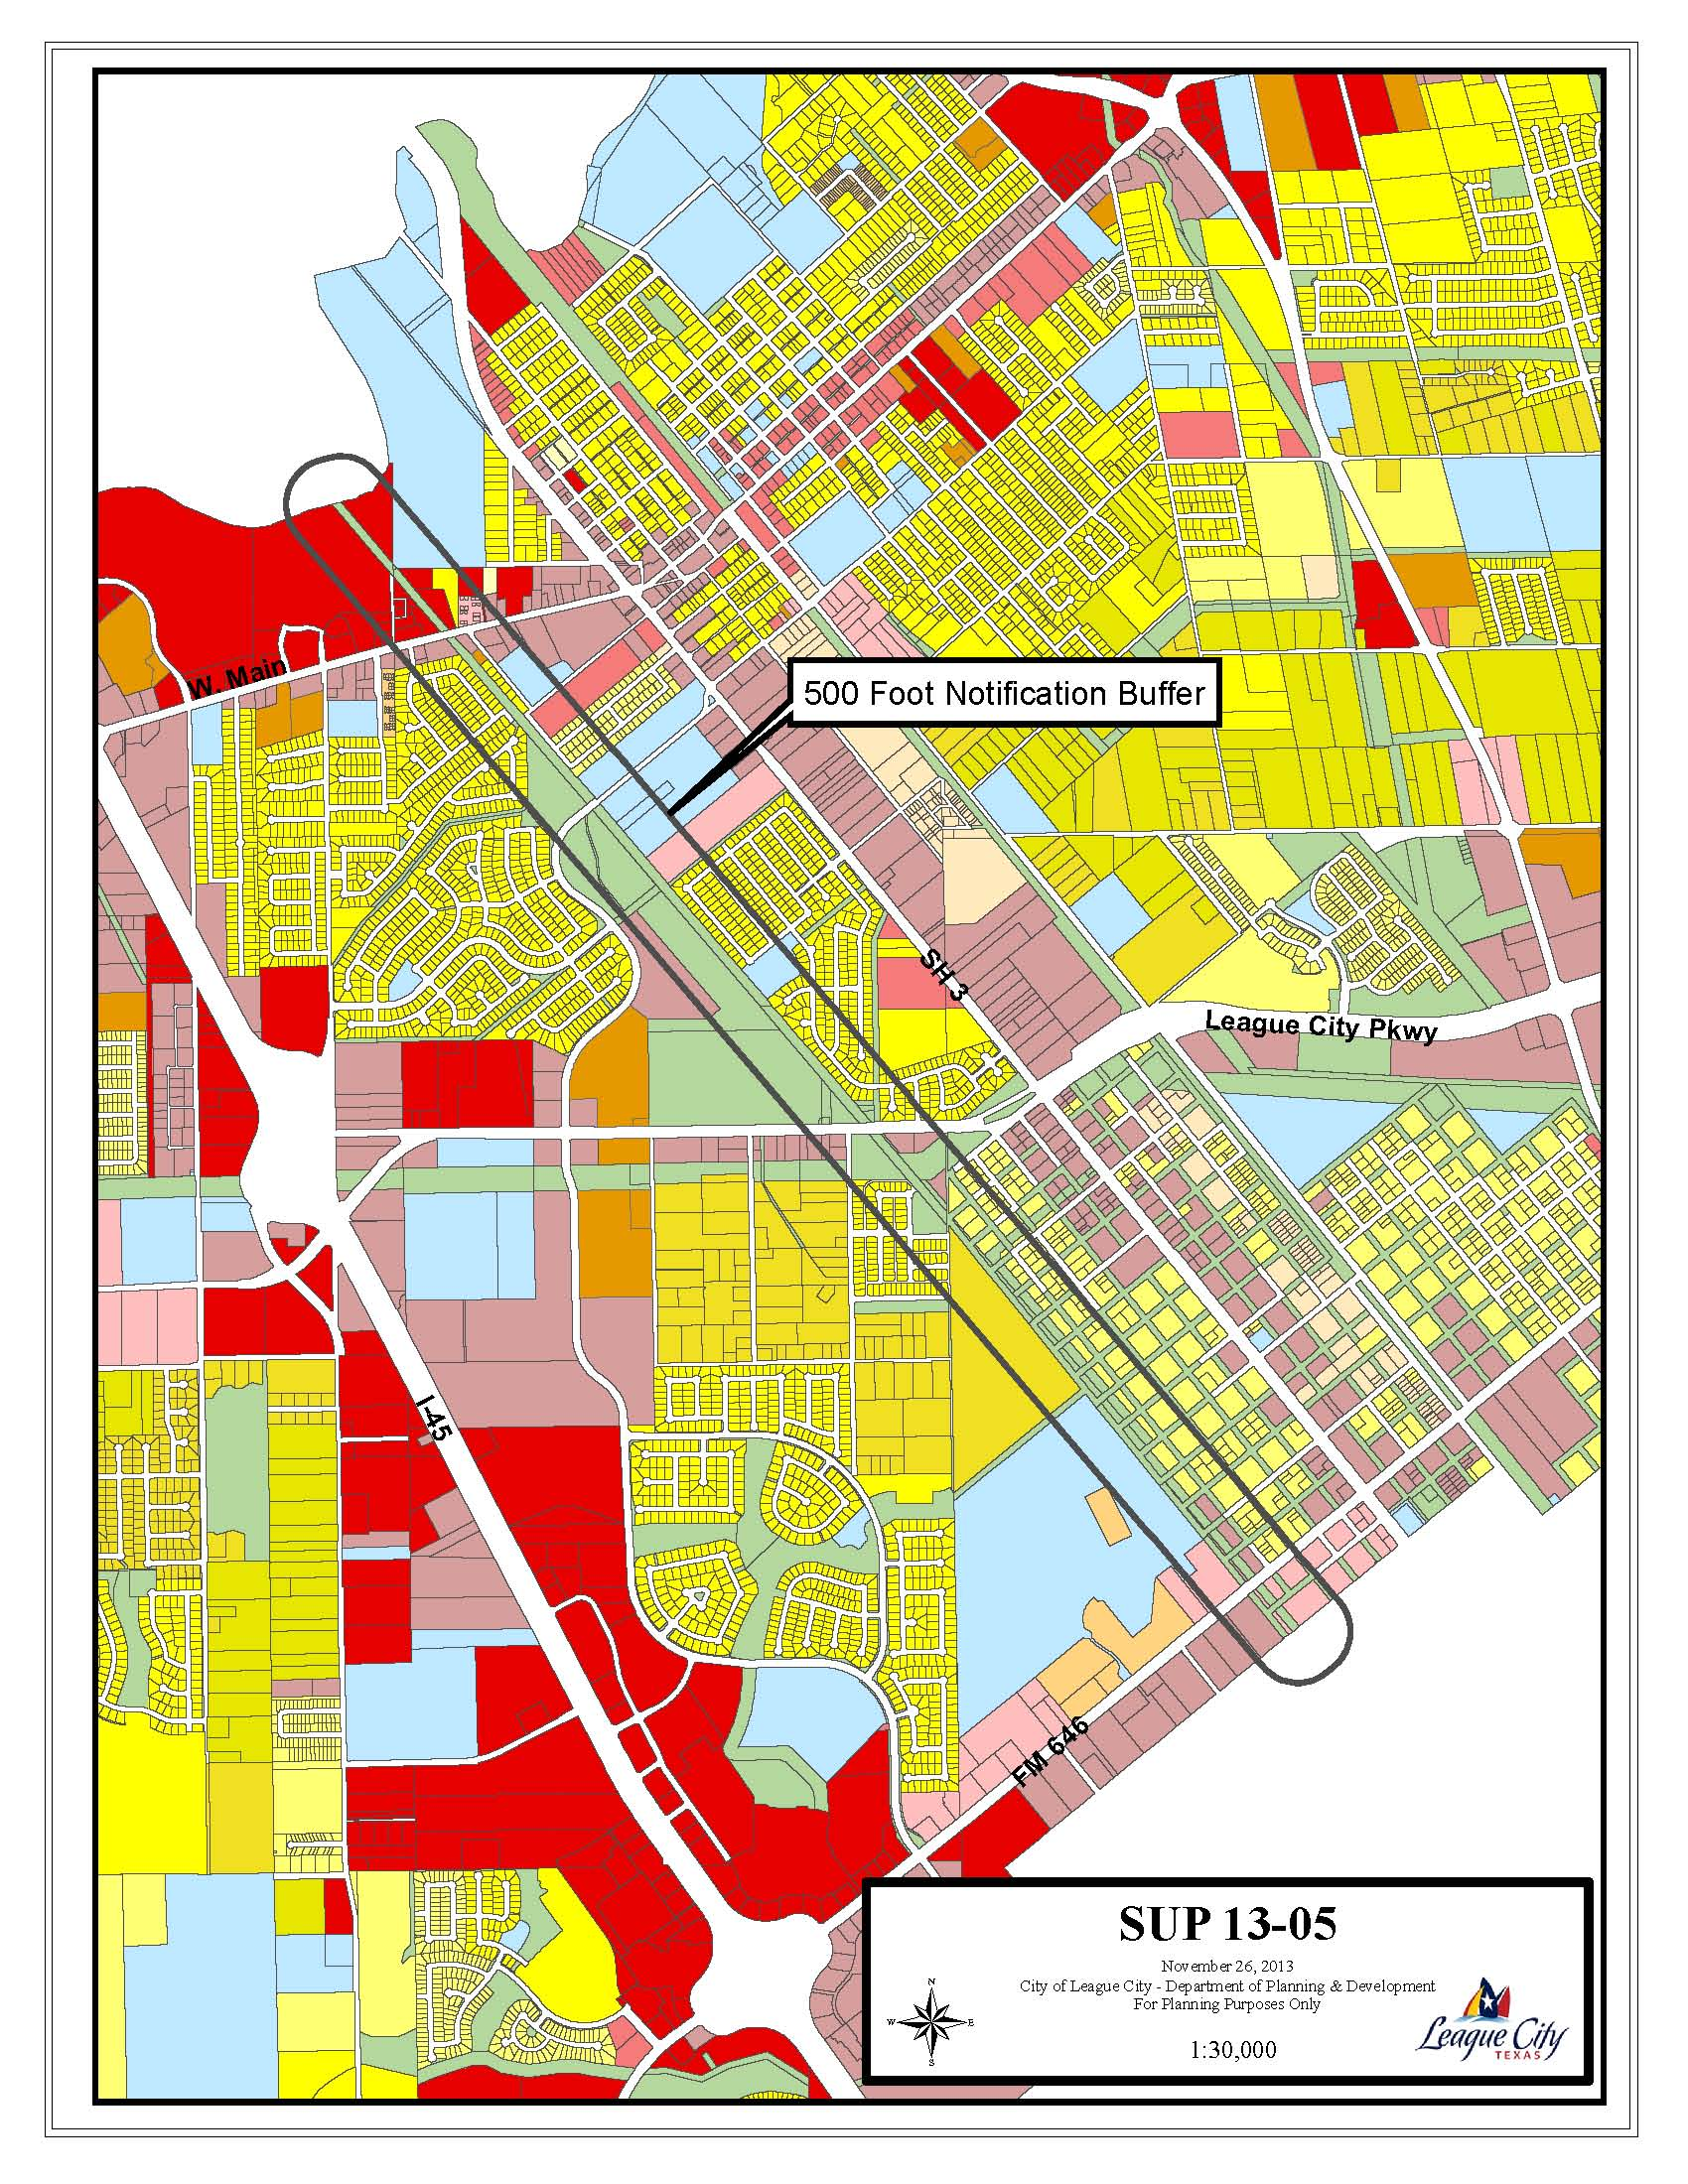 SUP13-05 Zoning Map